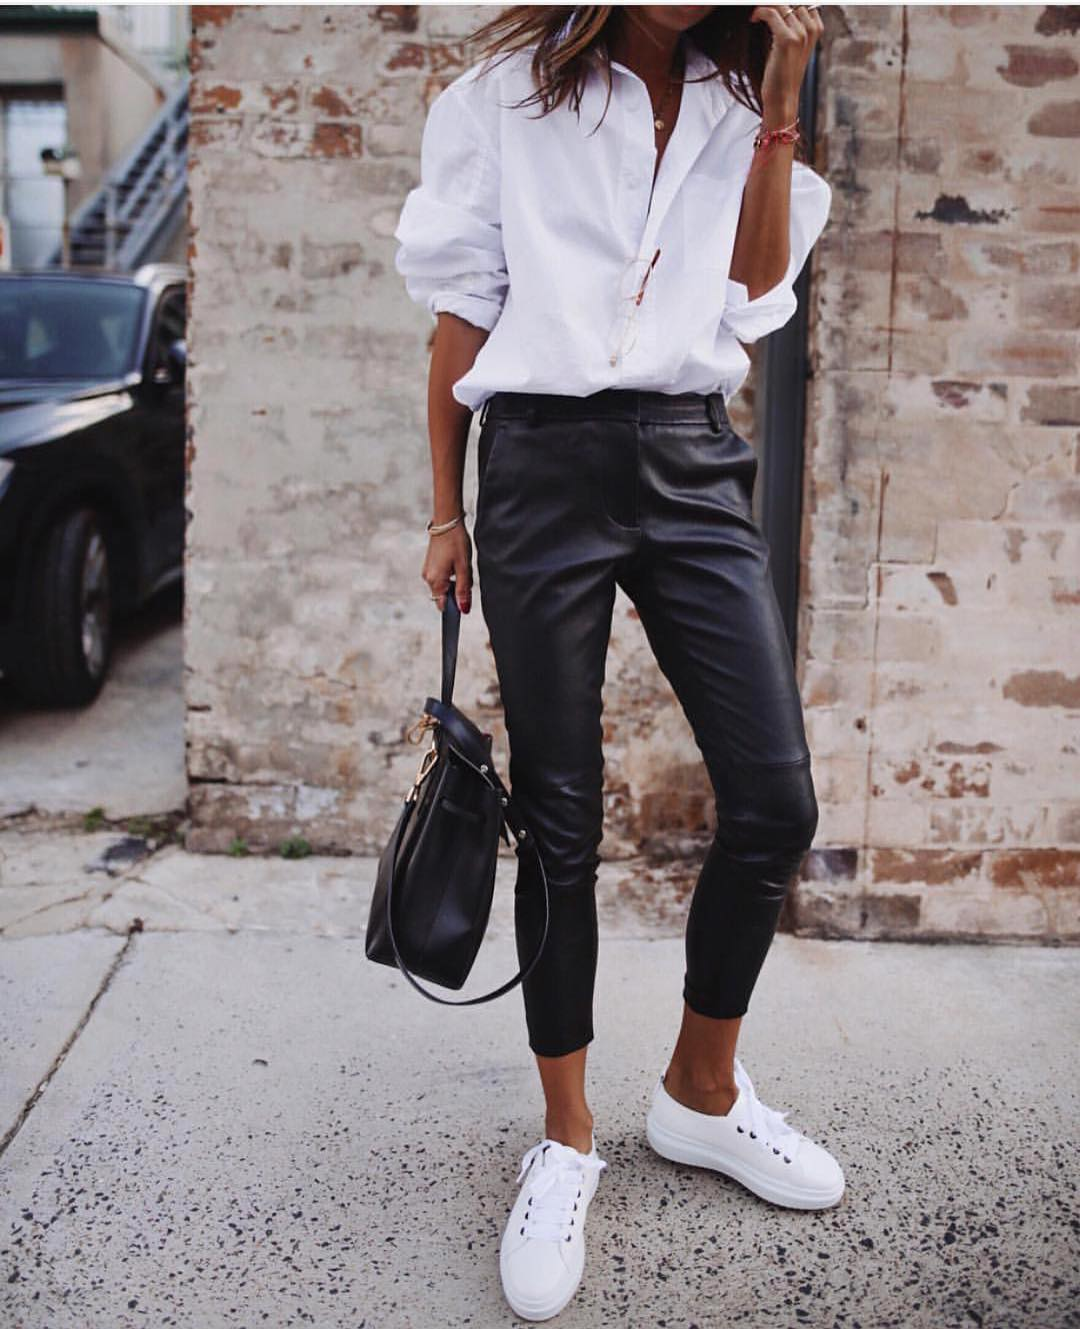 Monochrome Essentials For Spring: White Shirt, Black Leather Pants And White Kicks 2020